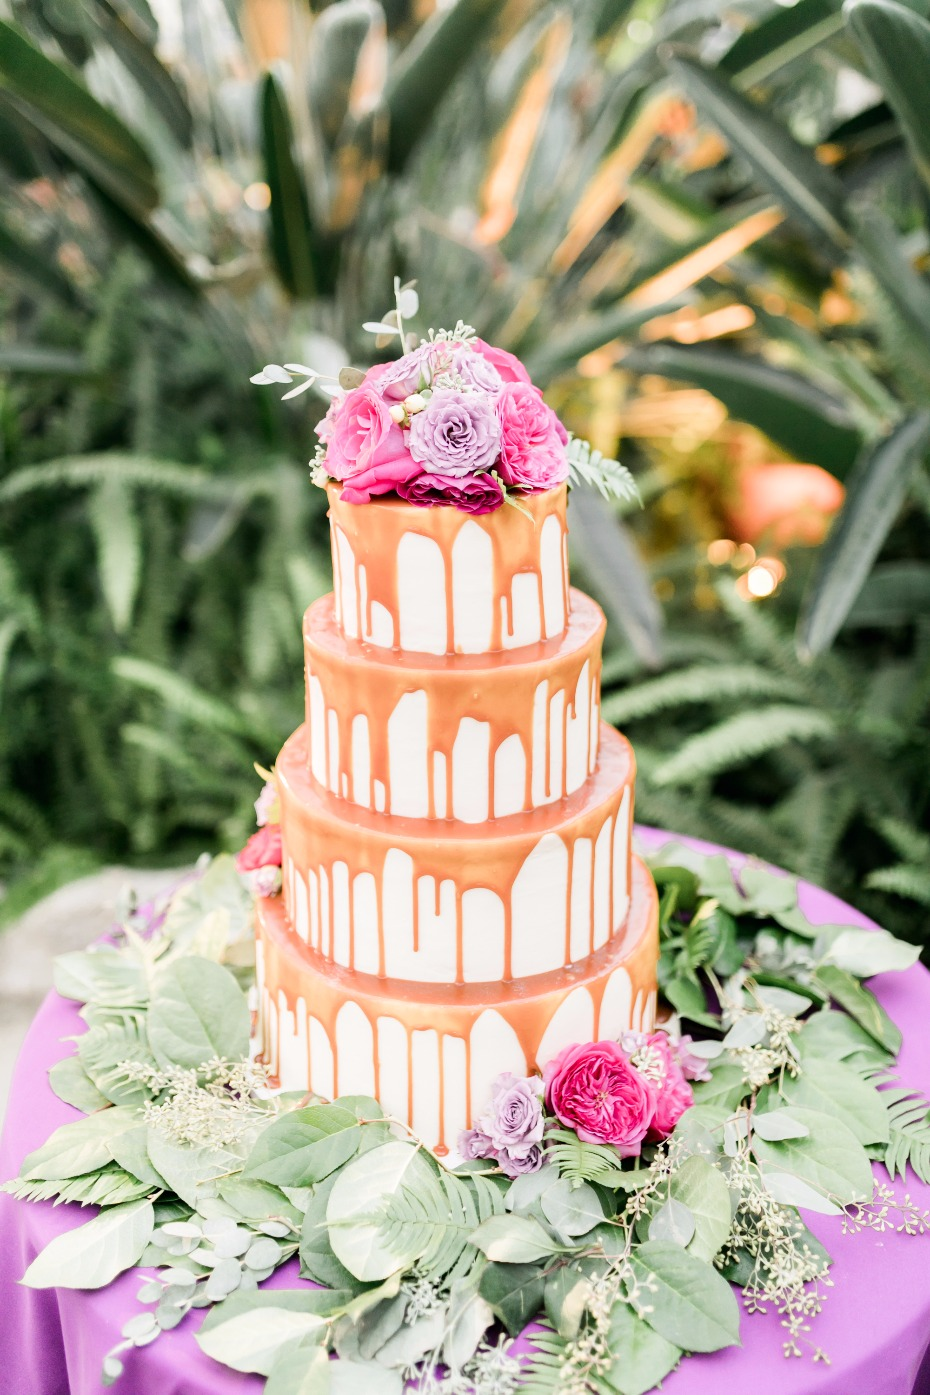 caramel drizzle wedding cake topped with flowers